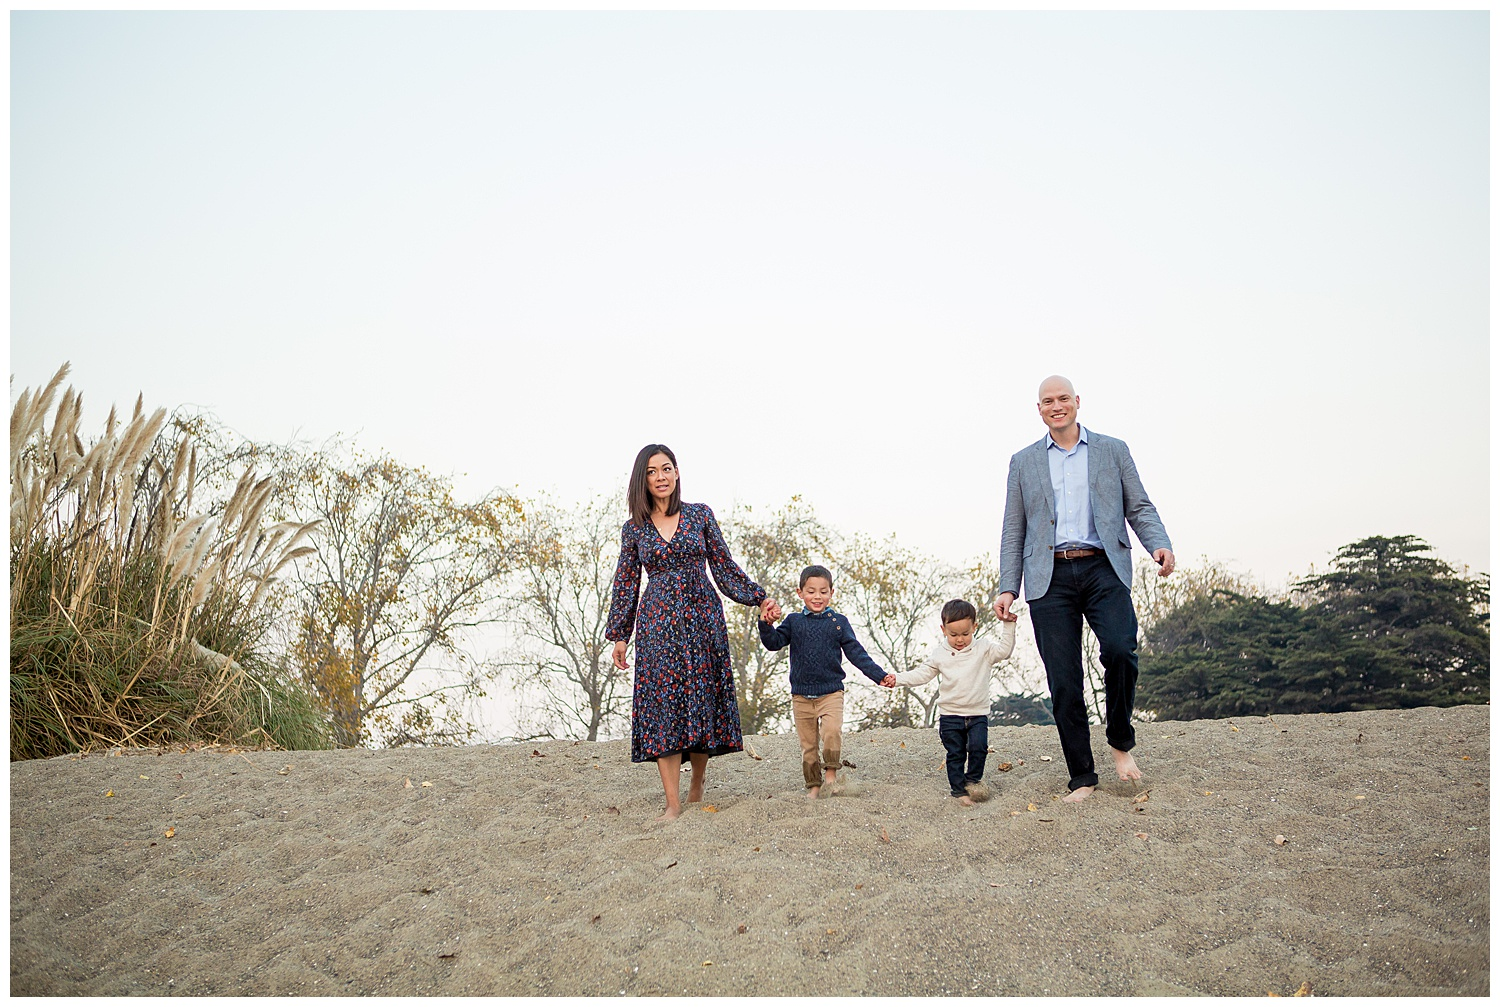 alameda.family.photographer_0030.jpg